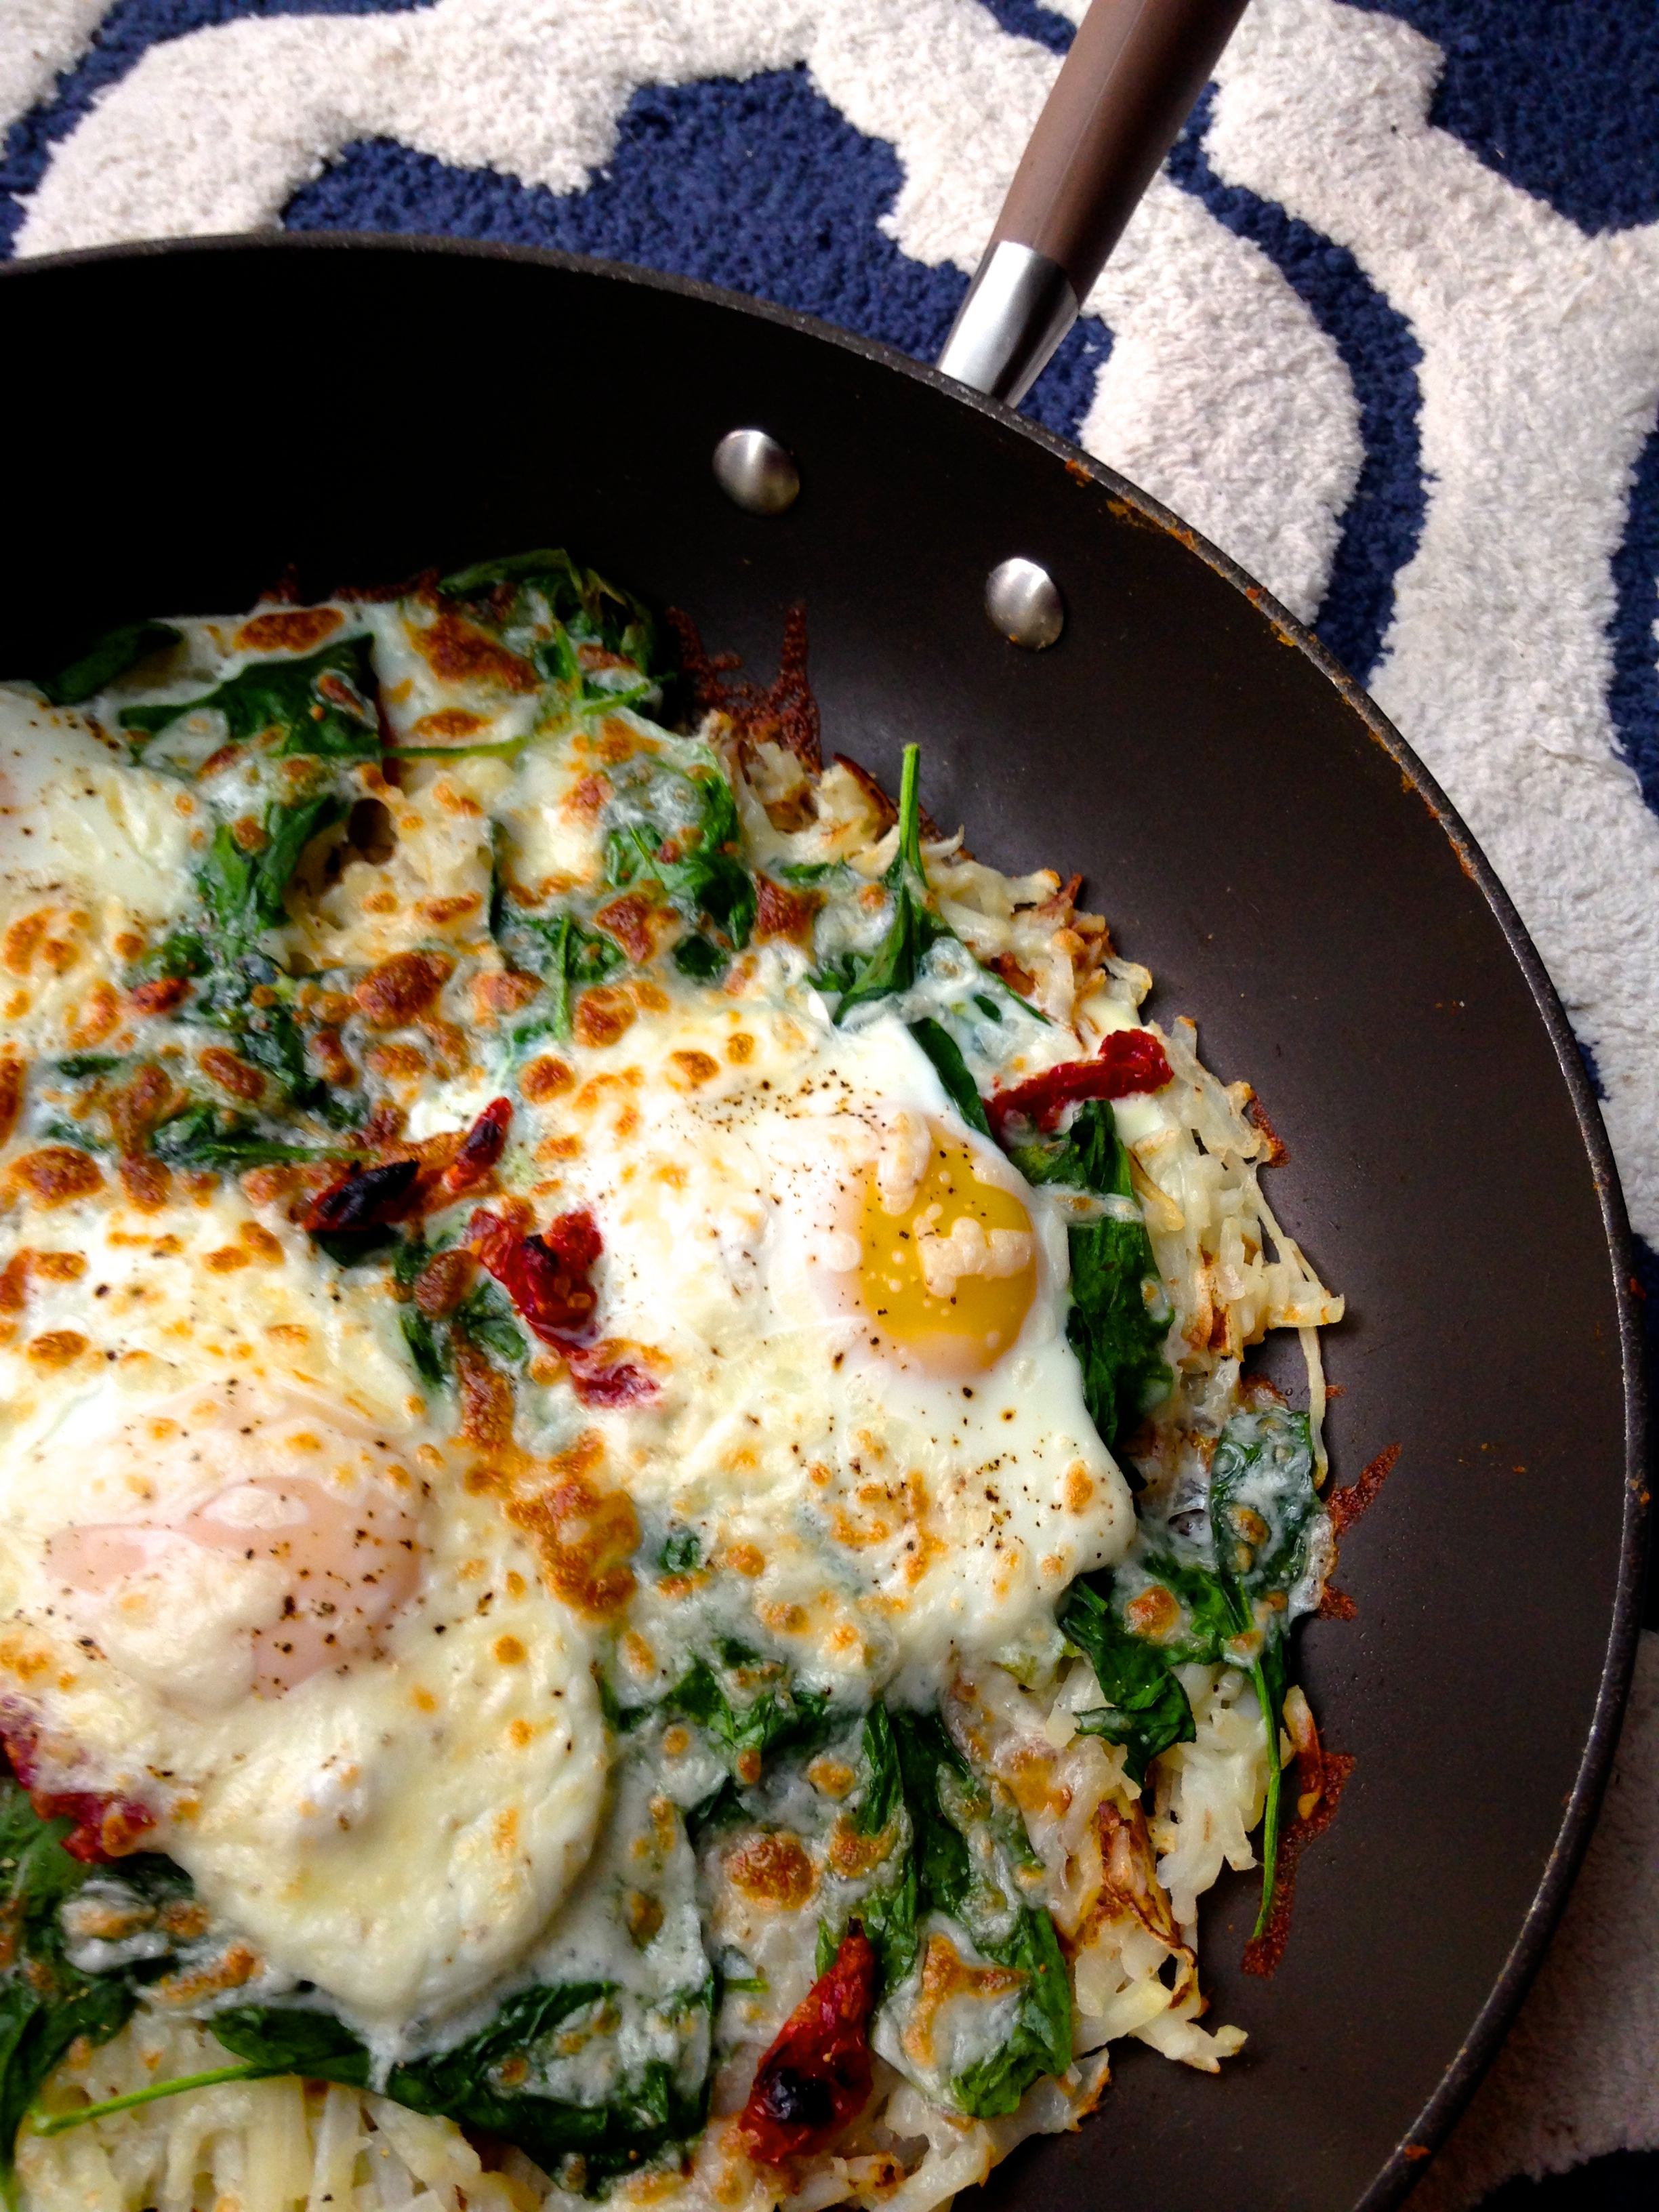 ... one-skillet meal by The Pioneer Woman, called the Eggbert Sunriser